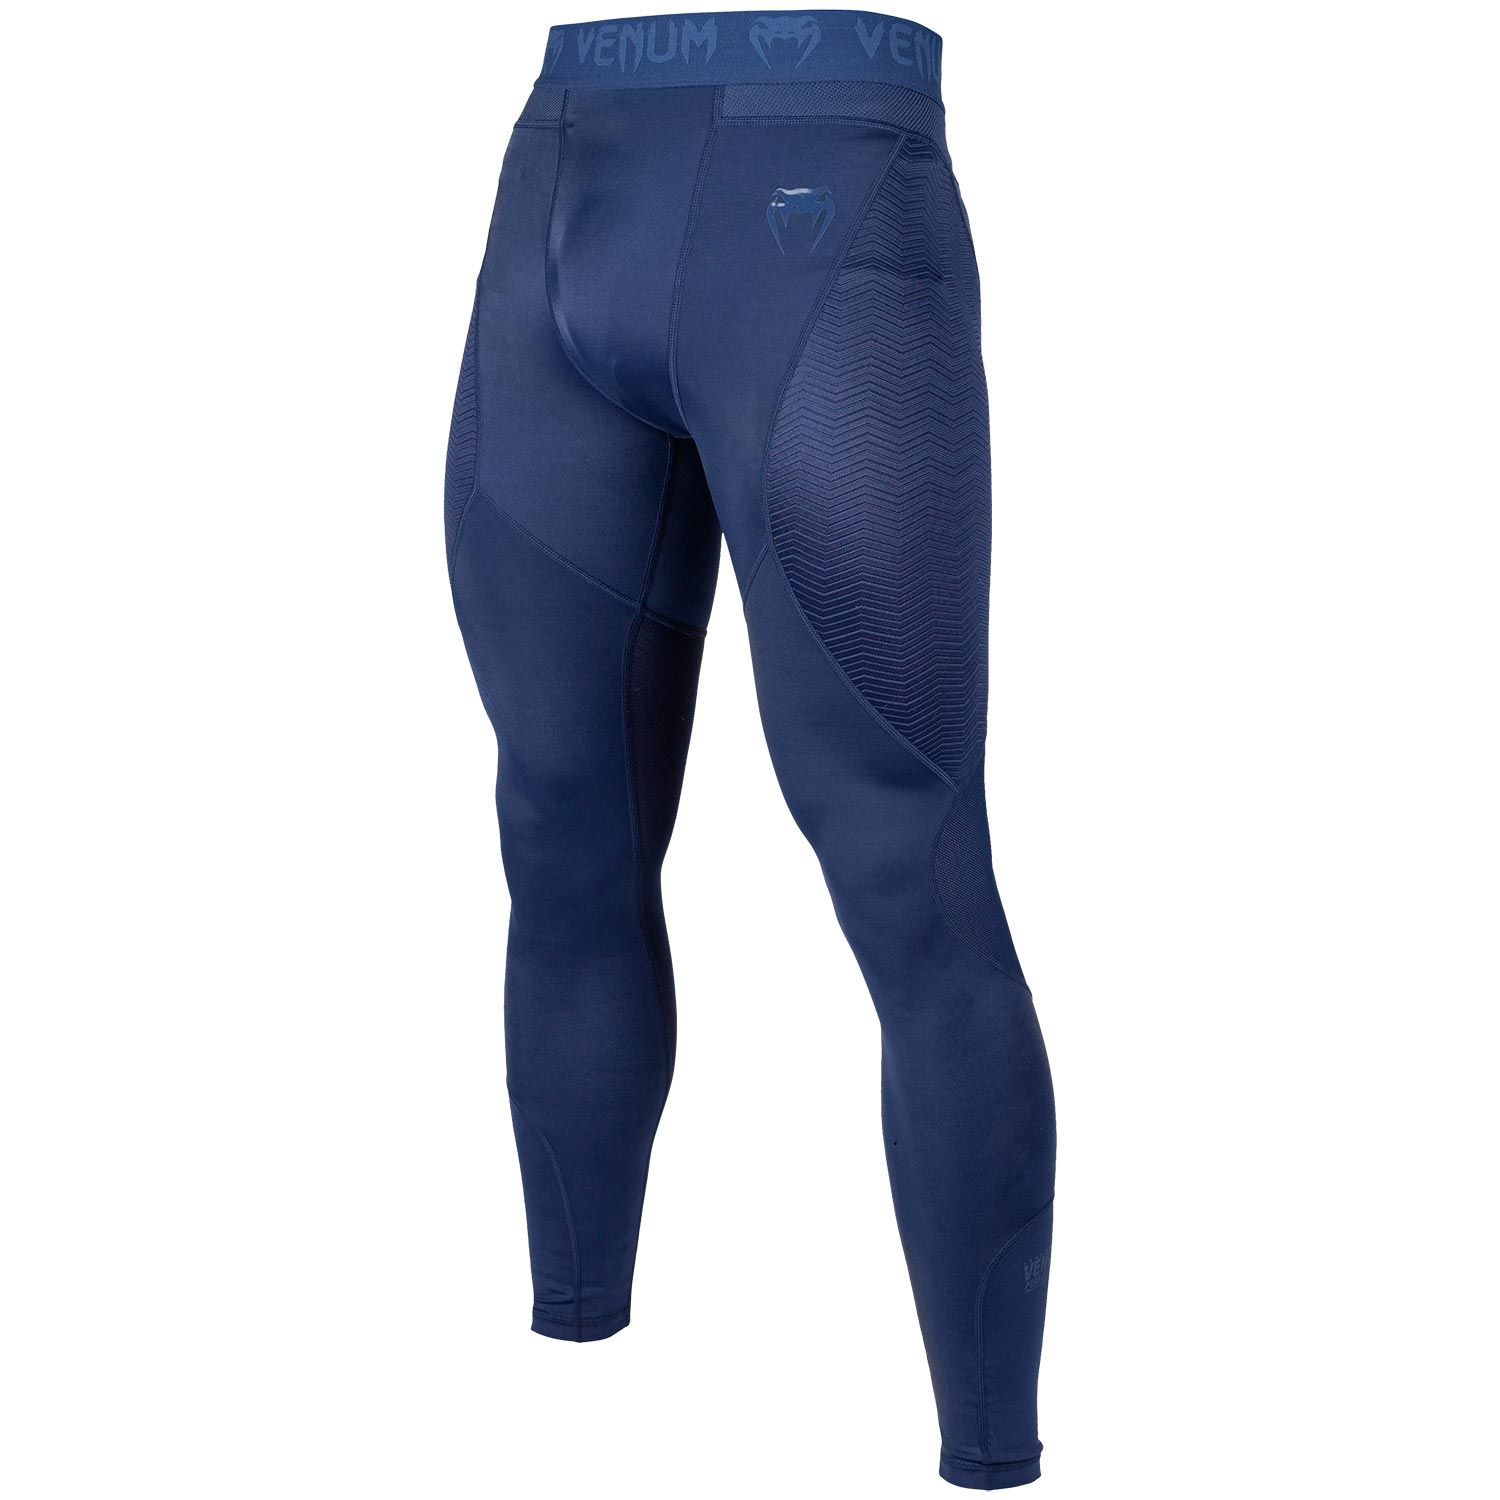 VENUM G-FIT Spat, Navy